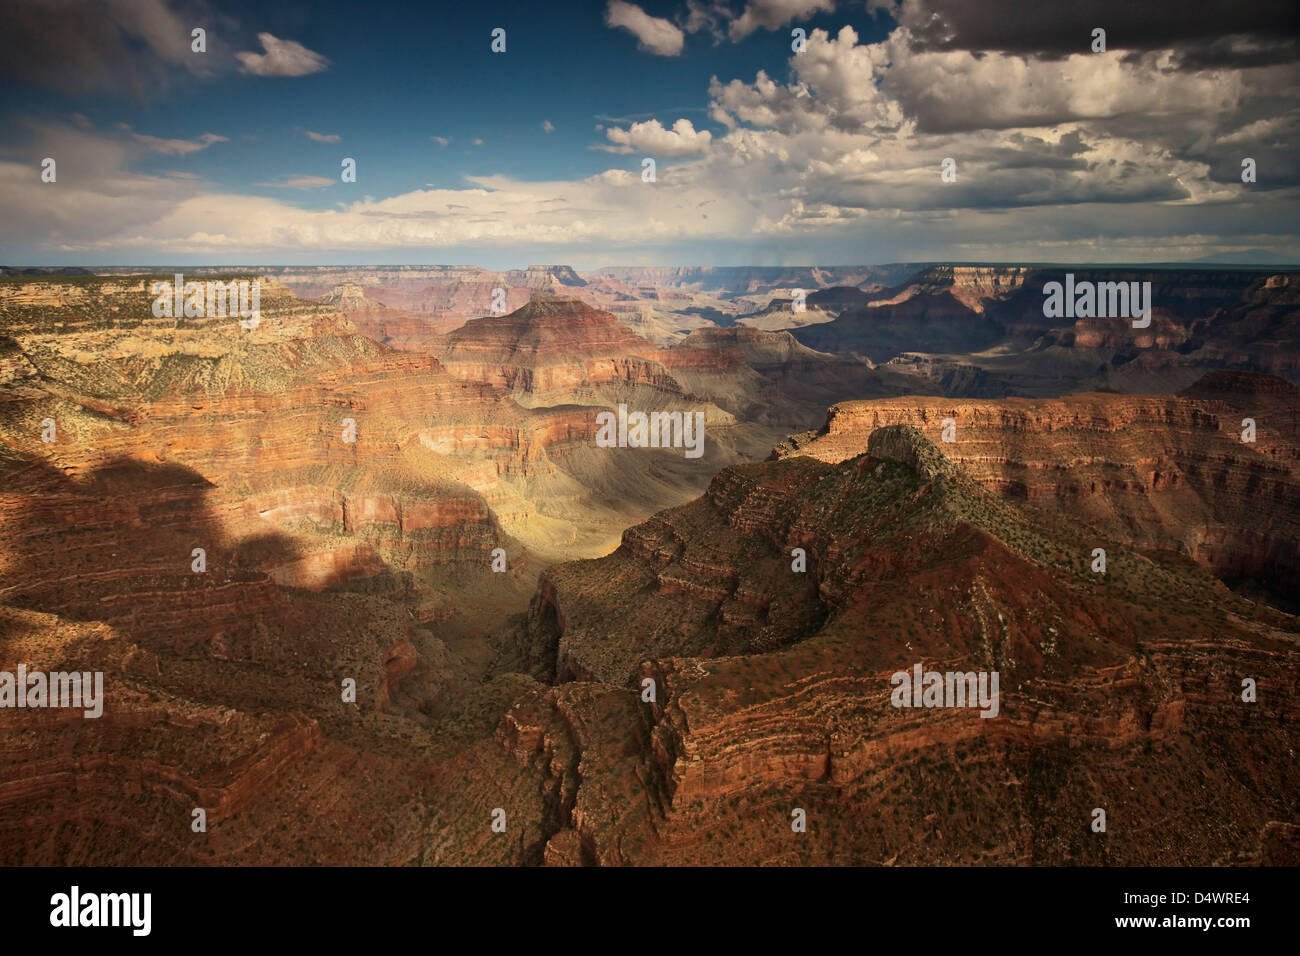 Aerial view of Grand Canyon, Arizona, USA. Taken from helicopter flying from the North Rim to the South Rim looking - Stock Image